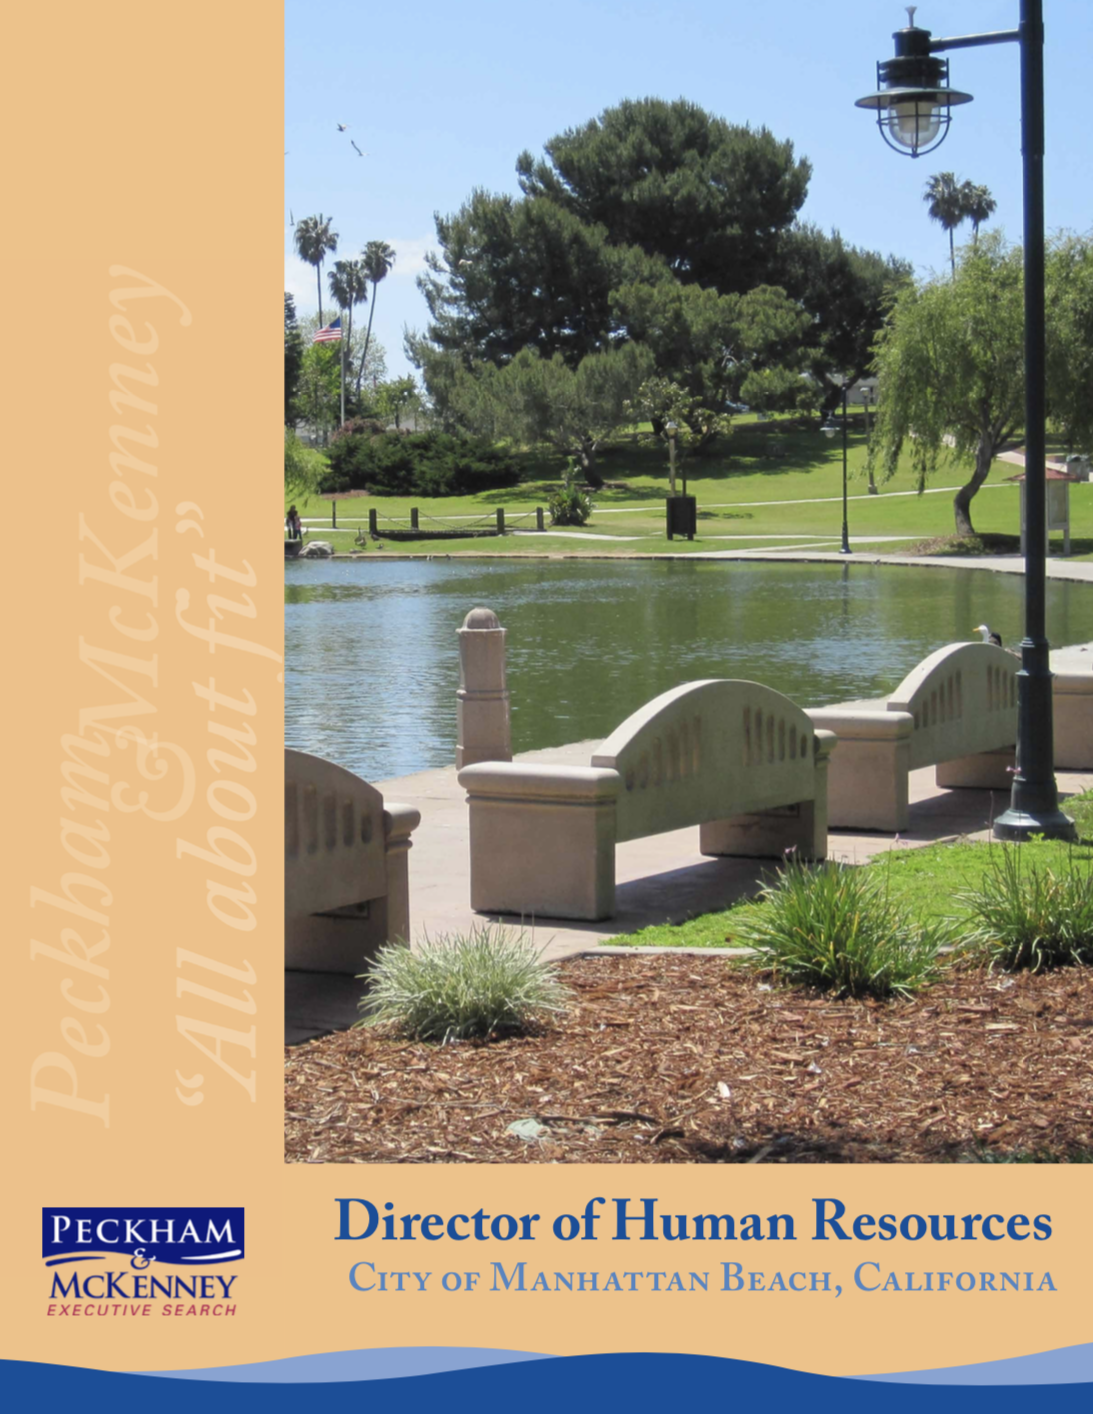 Peckham-McKenney-Executive-Search-Group-Director-of-Human-Resources-City-of-Manhattan-Beach.png